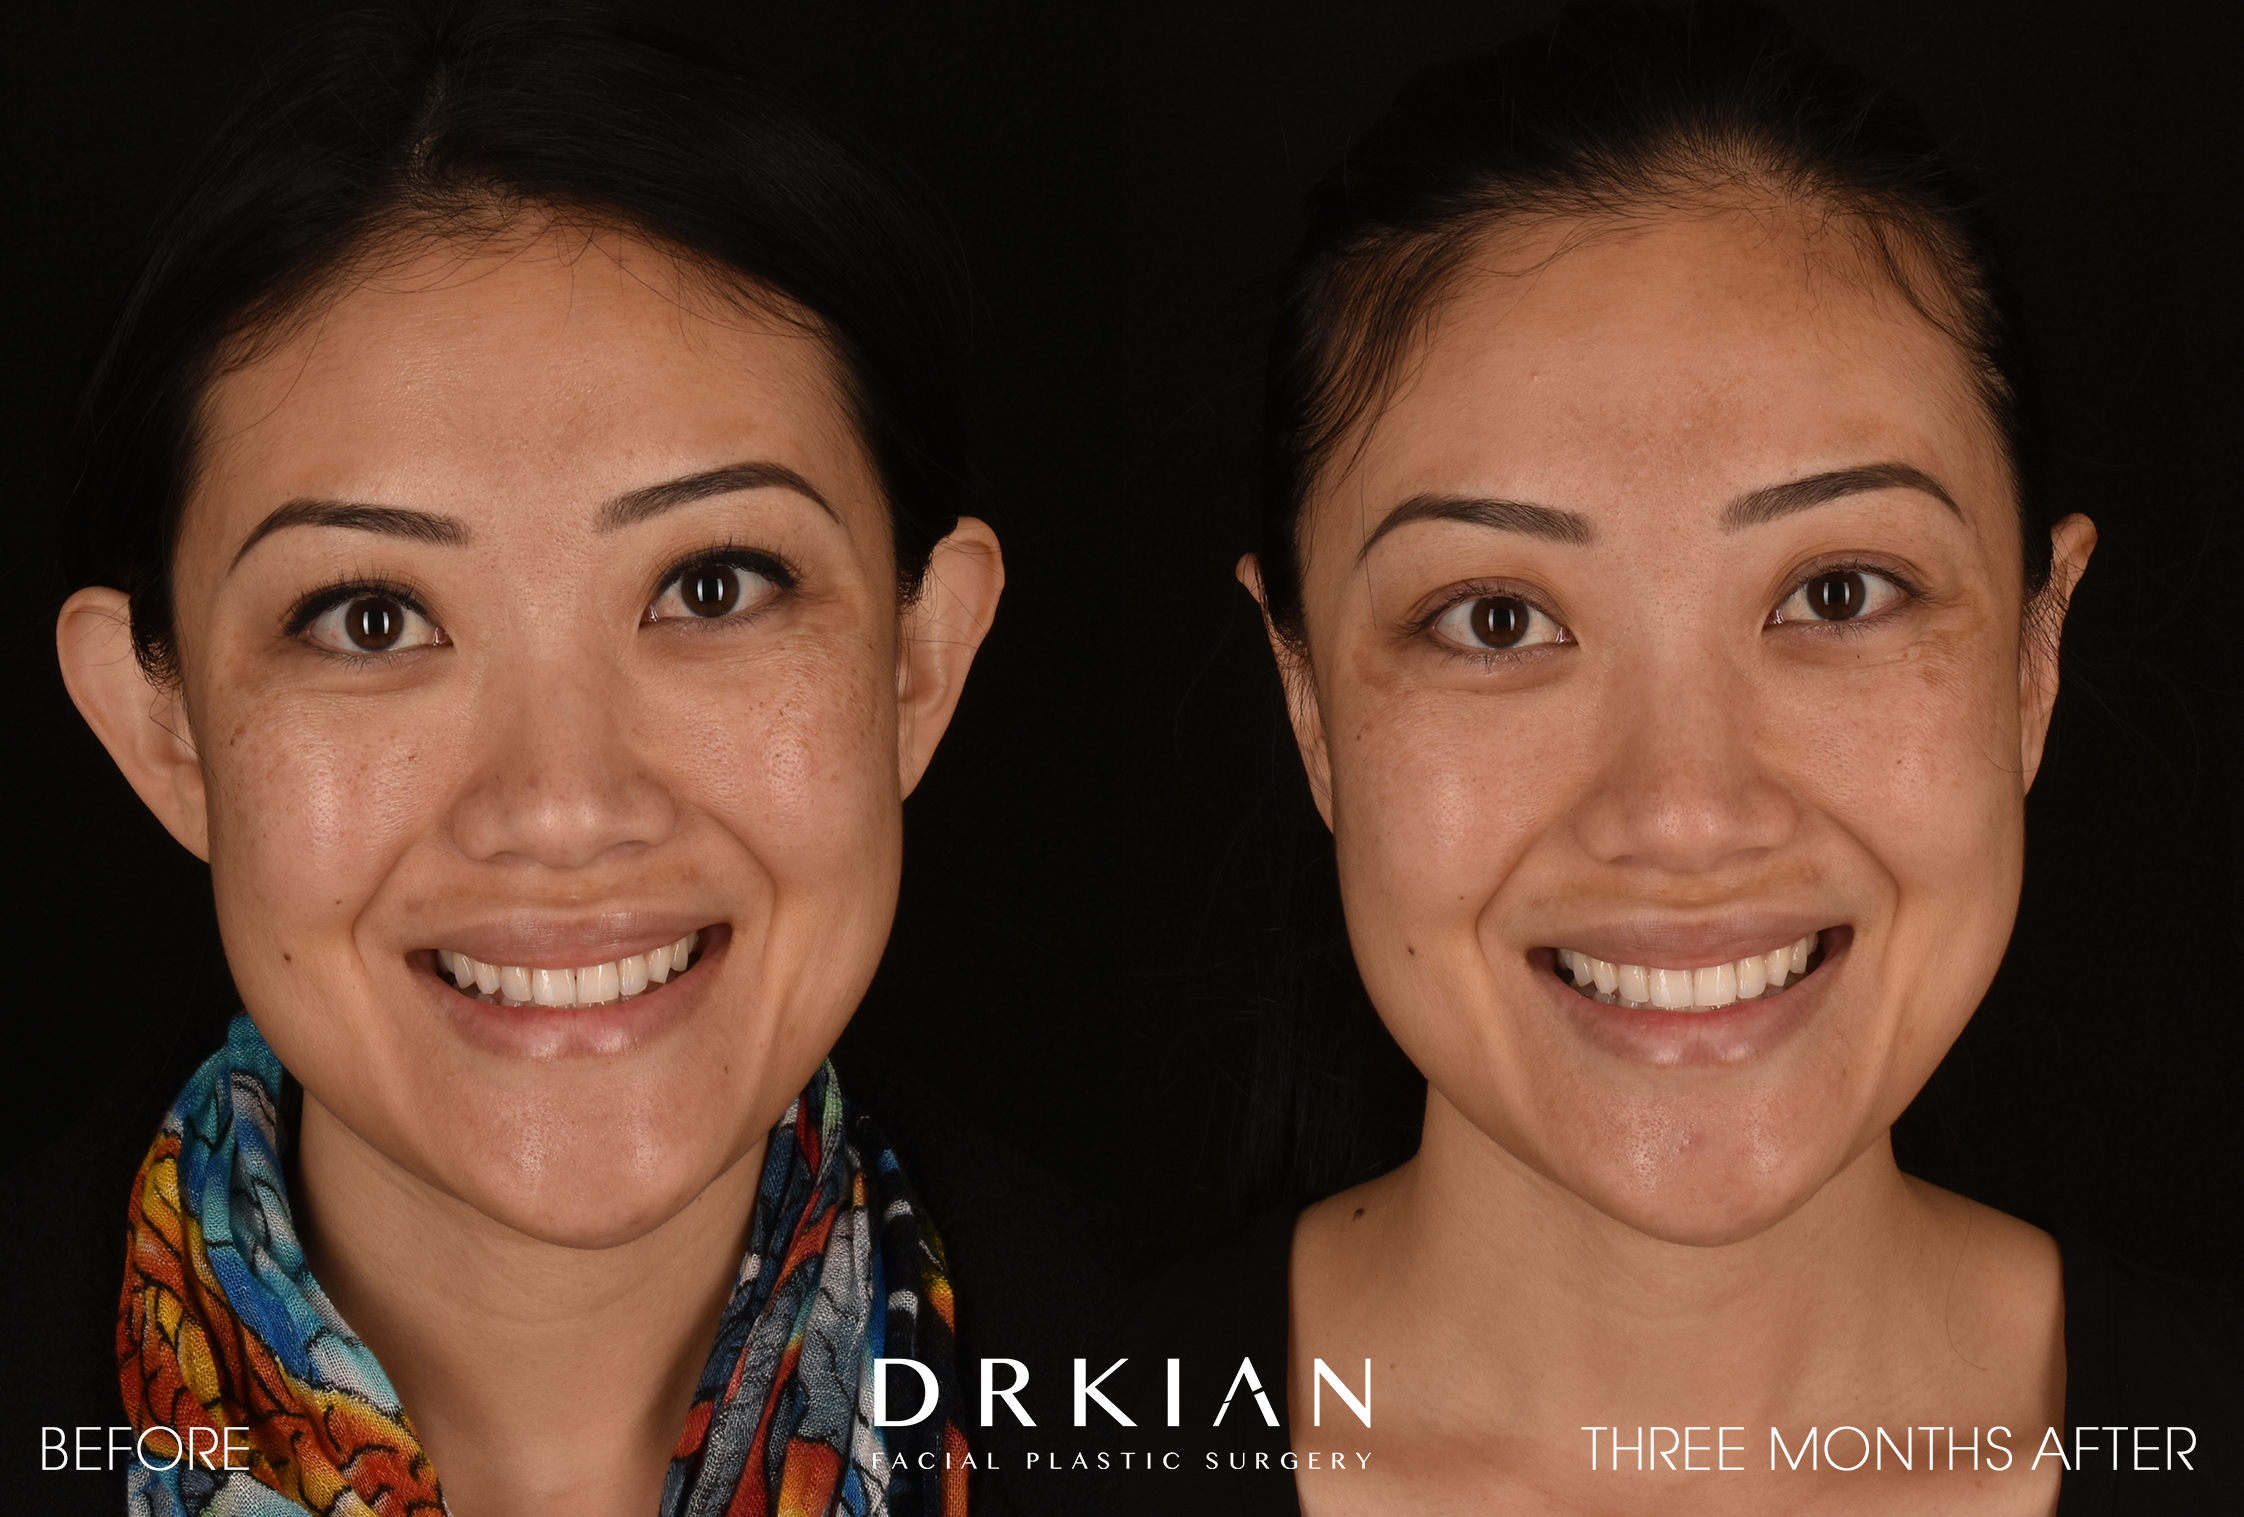 Otoplasty Before & After 3 Months